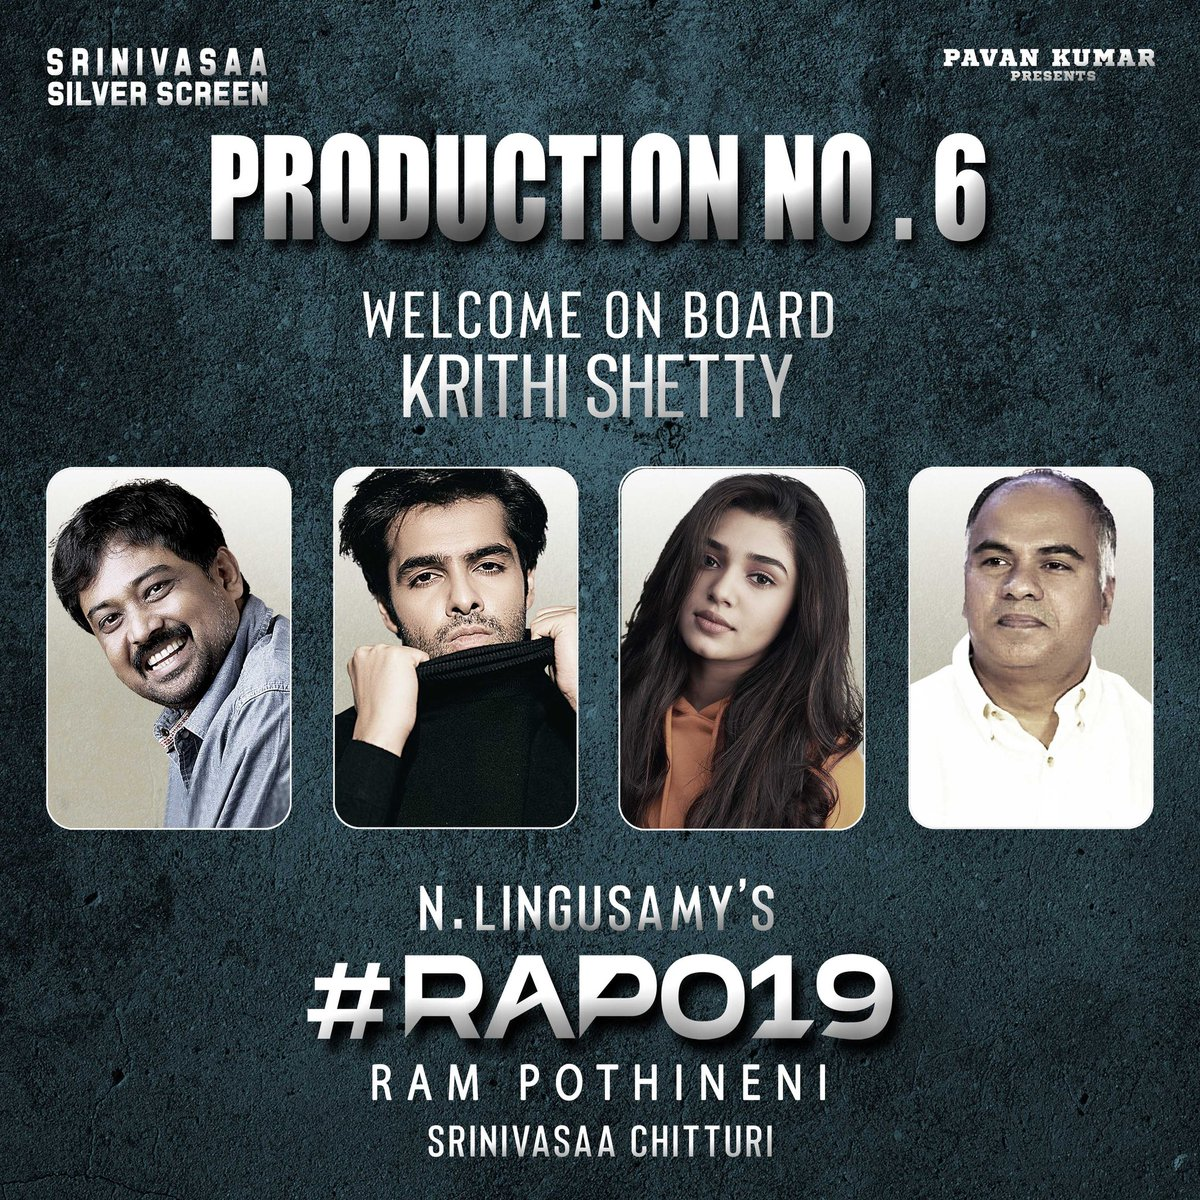 #Uppena fame #KrithiShetty onboard for #RAPO19  A bilingual project by #Lingusamy & Produced by #SrinivasaaChitturi.    #RAmPOthineni  @dirlingusamy @ramsayz @IamKrithiShetty @SS_Screens